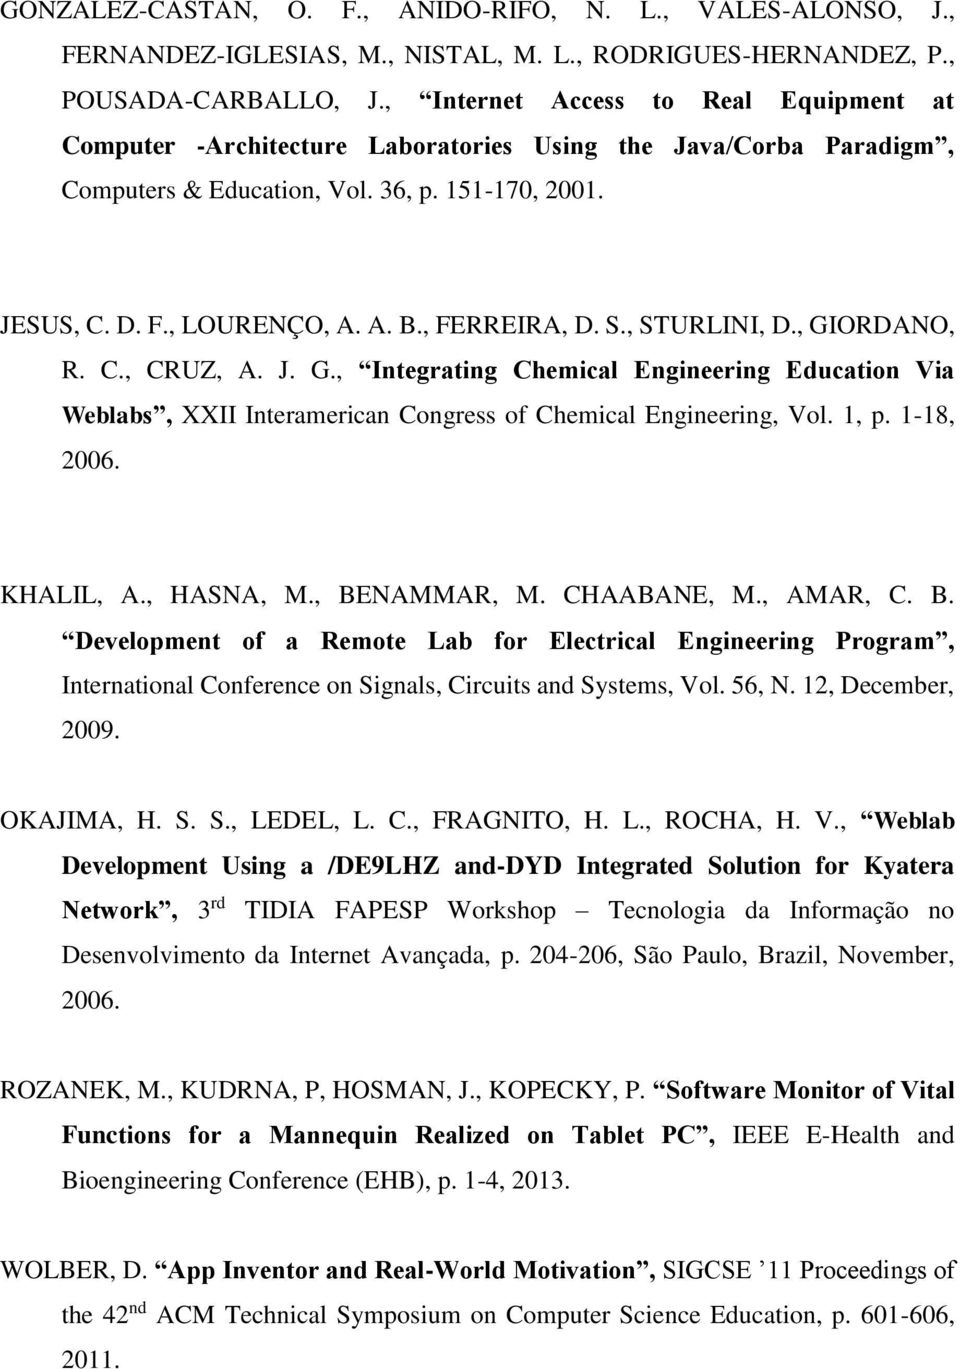 , FERREIRA, D. S., STURLINI, D., GIORDANO, R. C., CRUZ, A. J. G., Integrating Chemical Engineering Education Via Weblabs, XXII Interamerican Congress of Chemical Engineering, Vol. 1, p. 1-18, 2006.